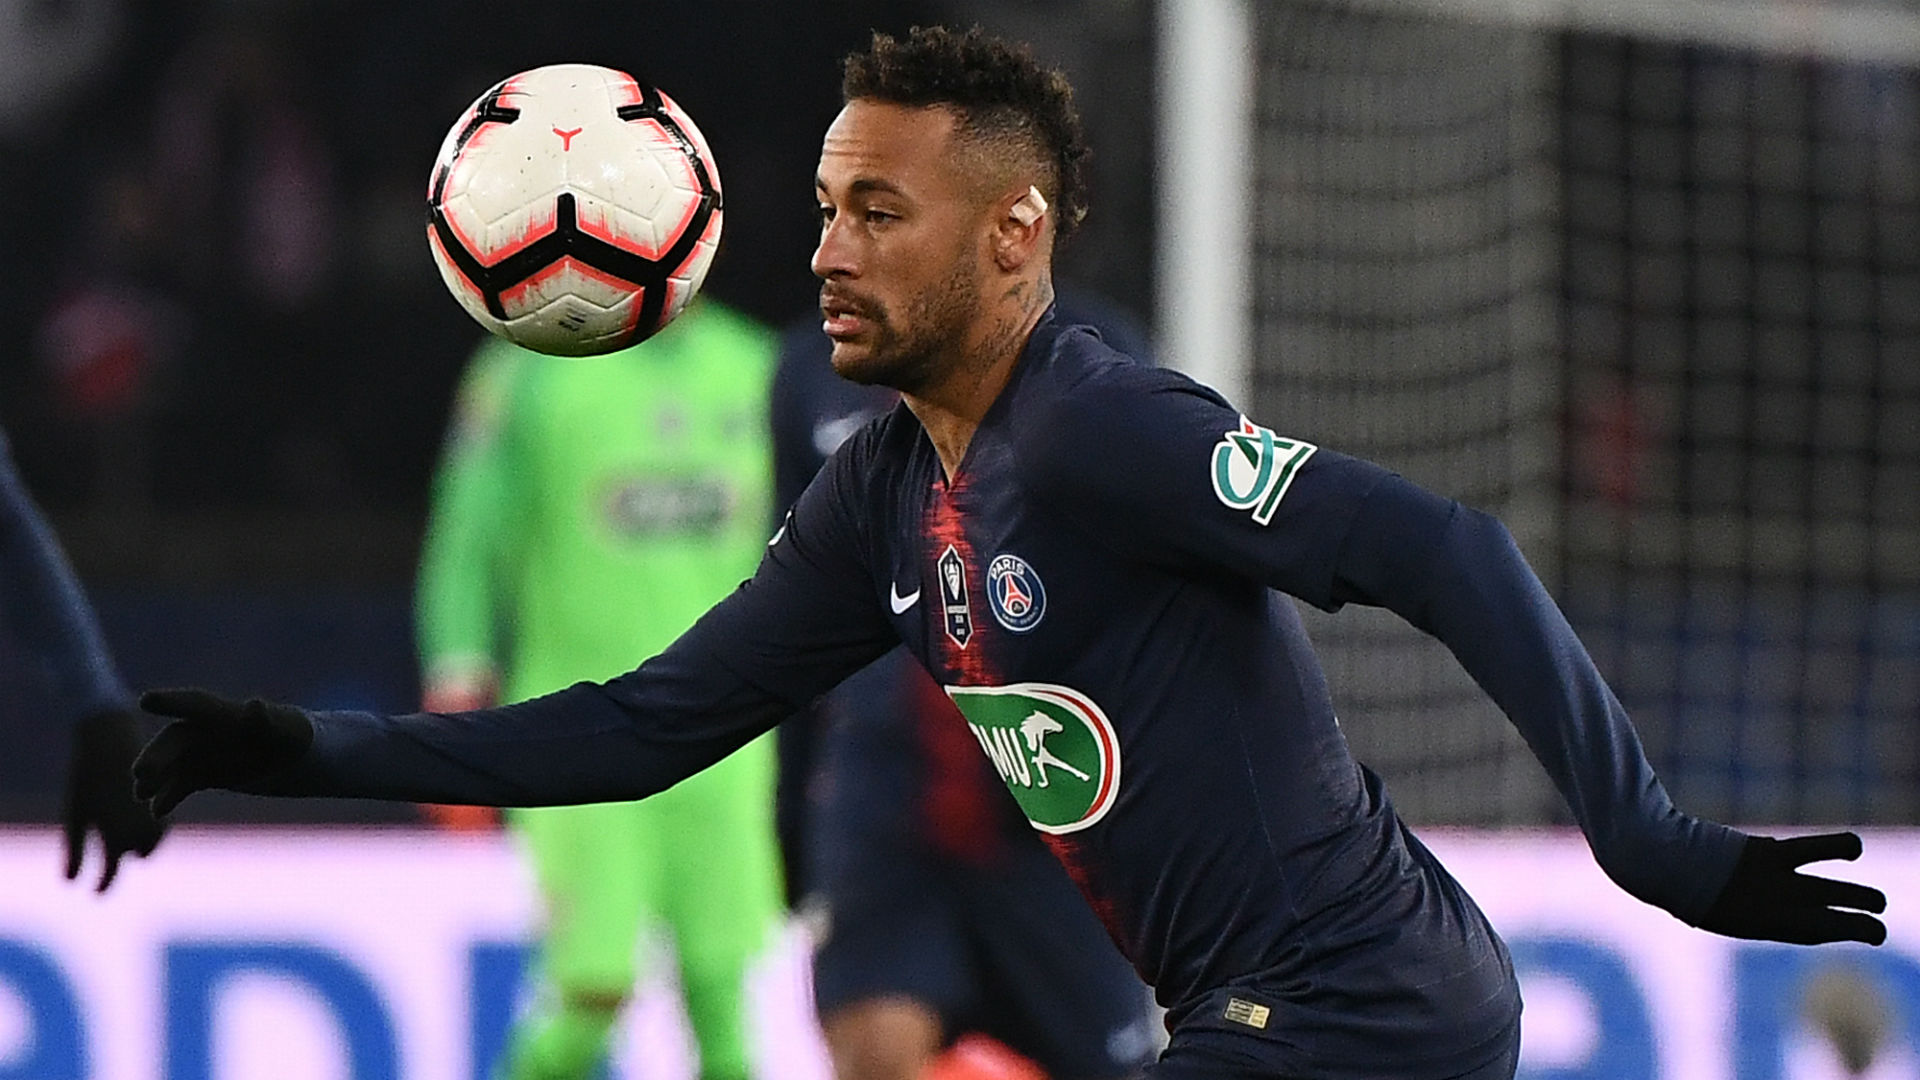 French media expecting Neymar to miss Manchester United first leg